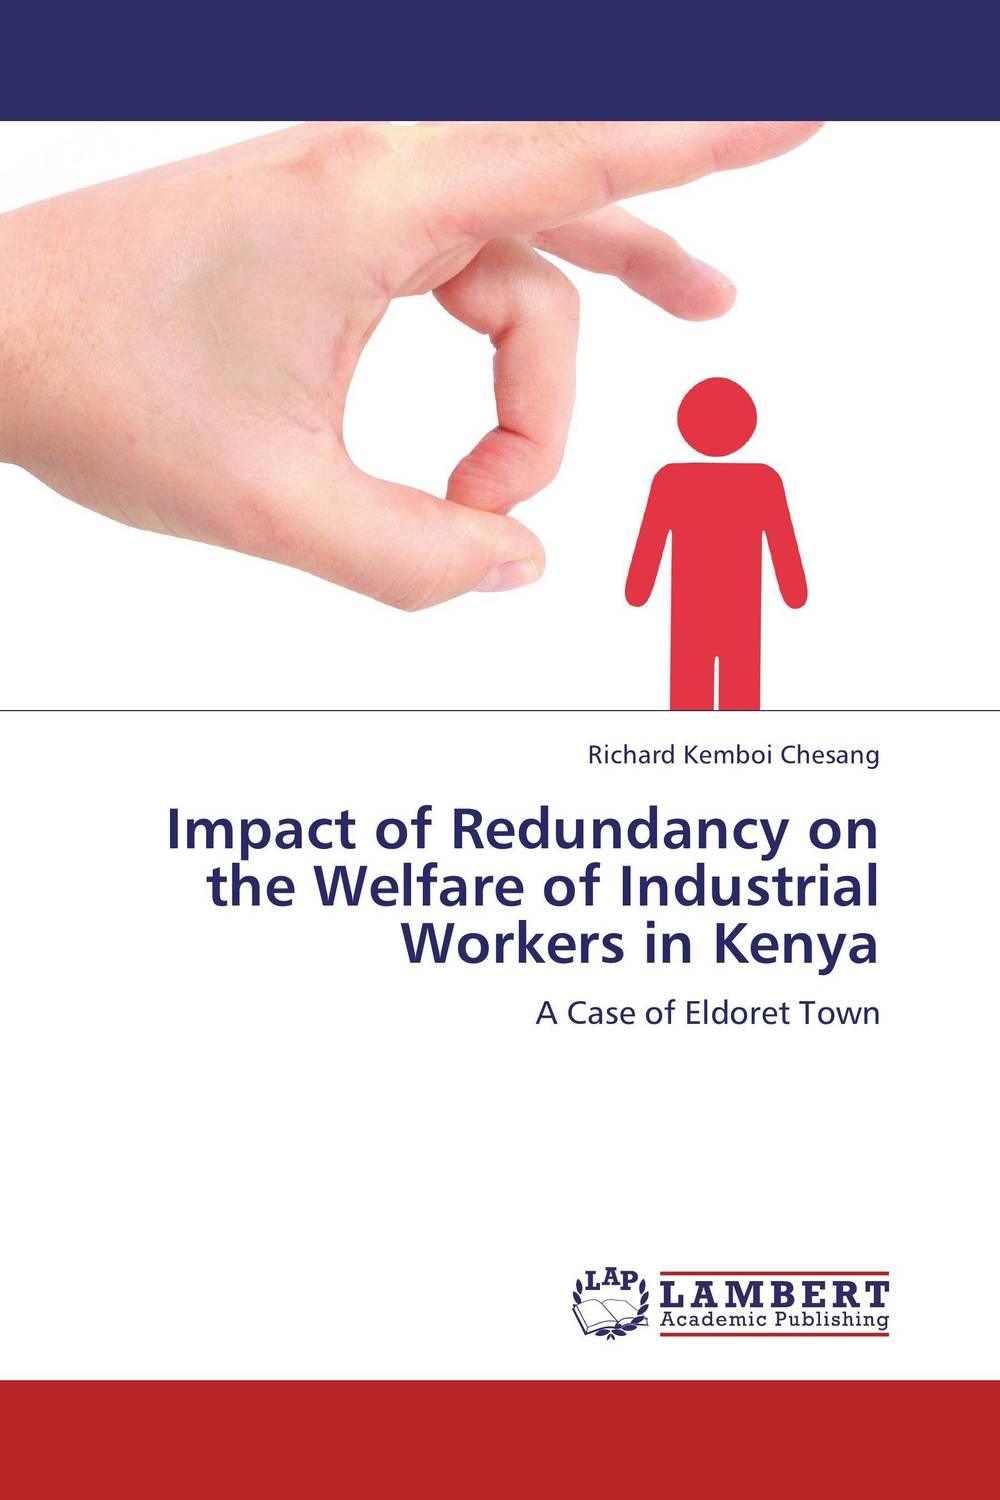 Impact of Redundancy on the Welfare of Industrial Workers in Kenya economic methodology